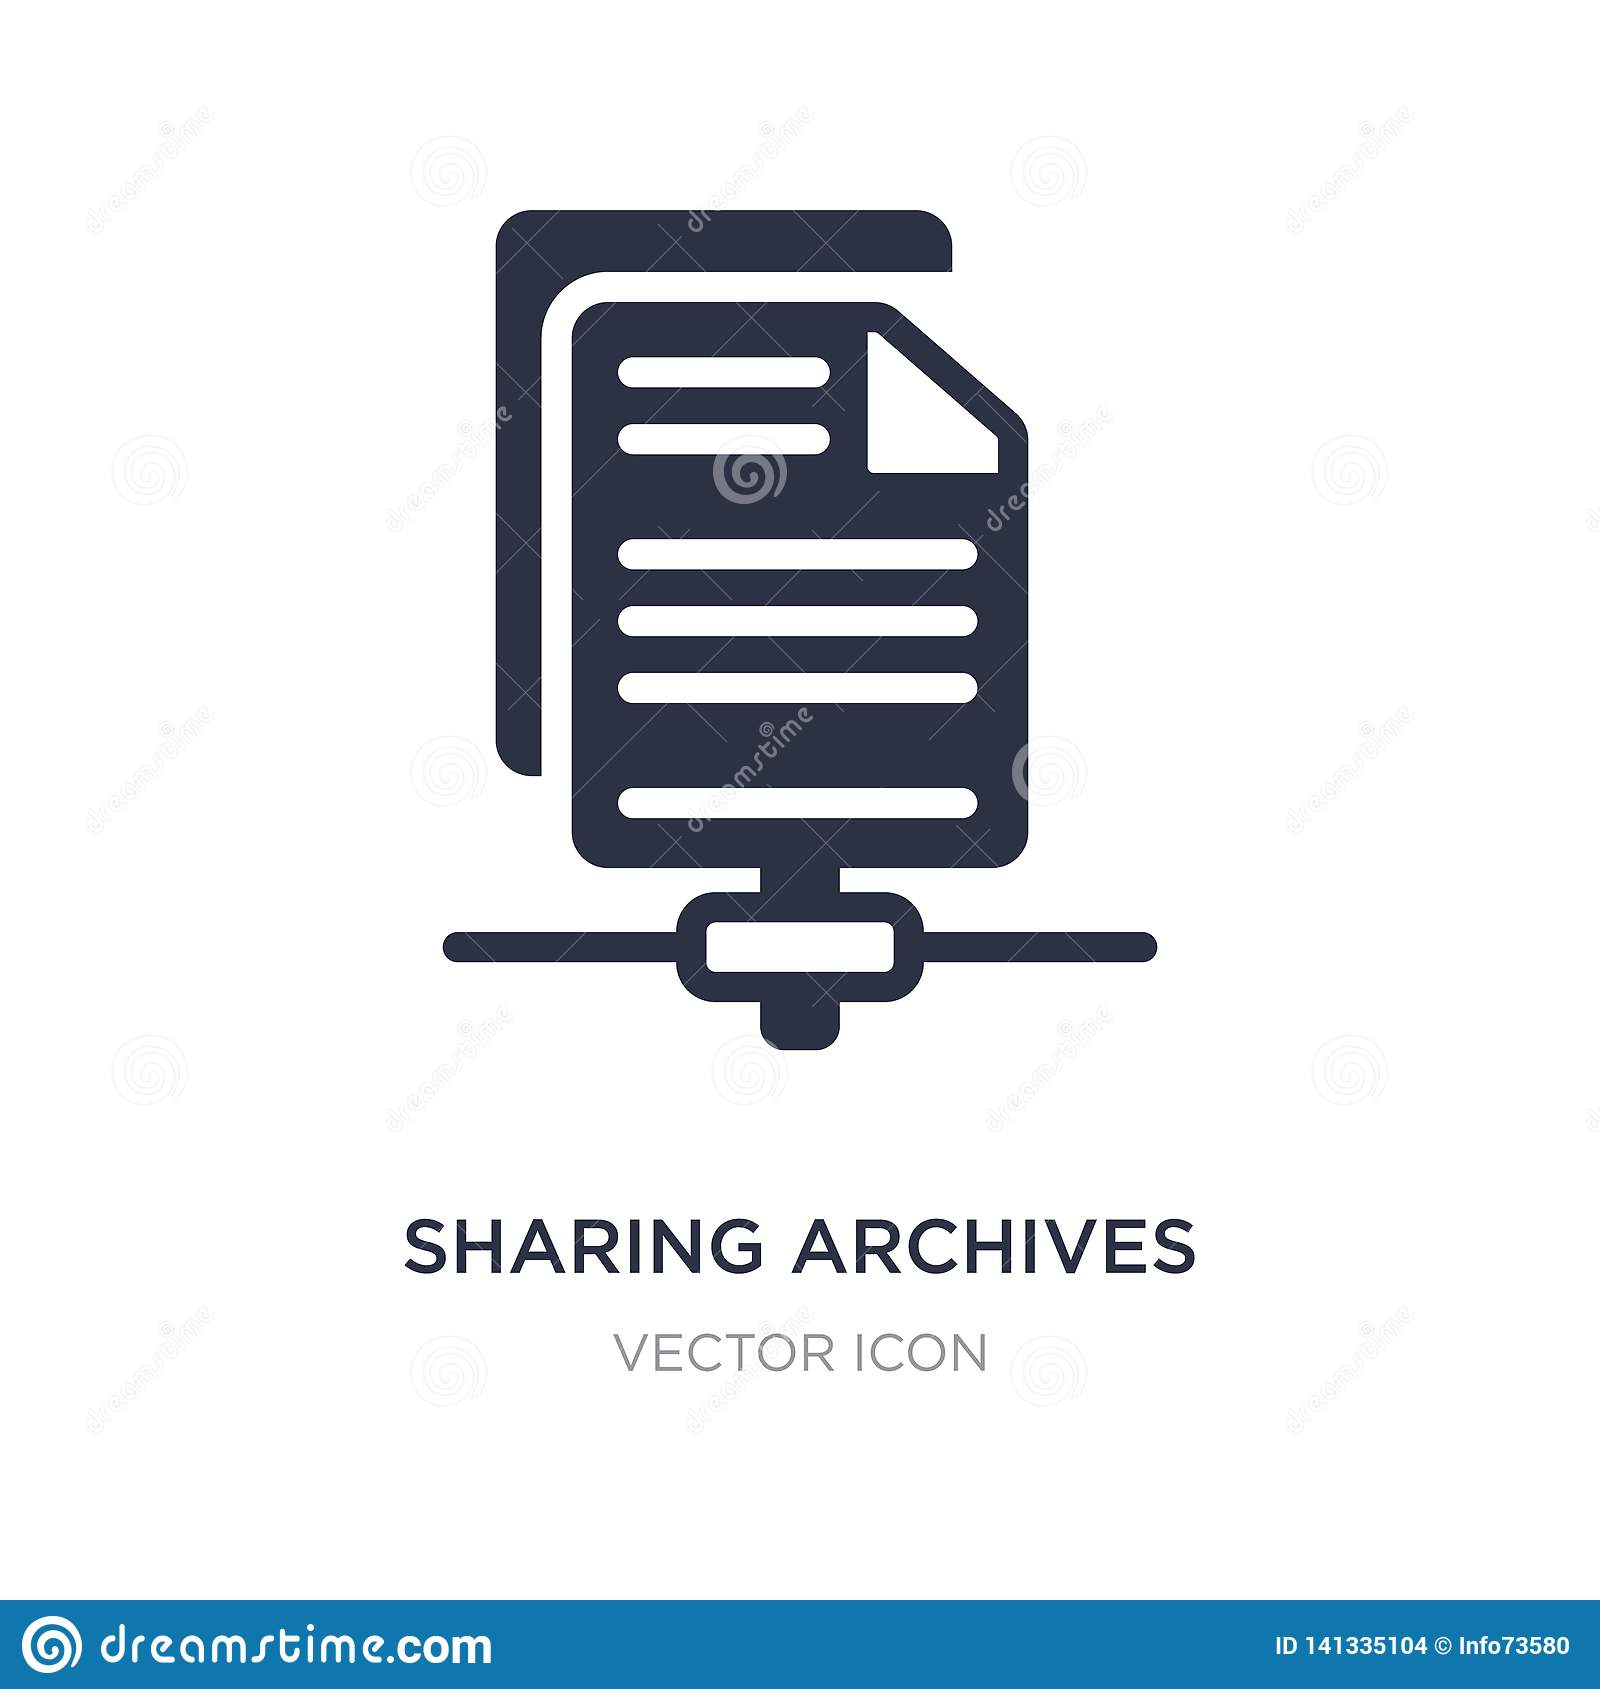 sharing archives icon on white background. Simple element illustration from Search engine optimization concept